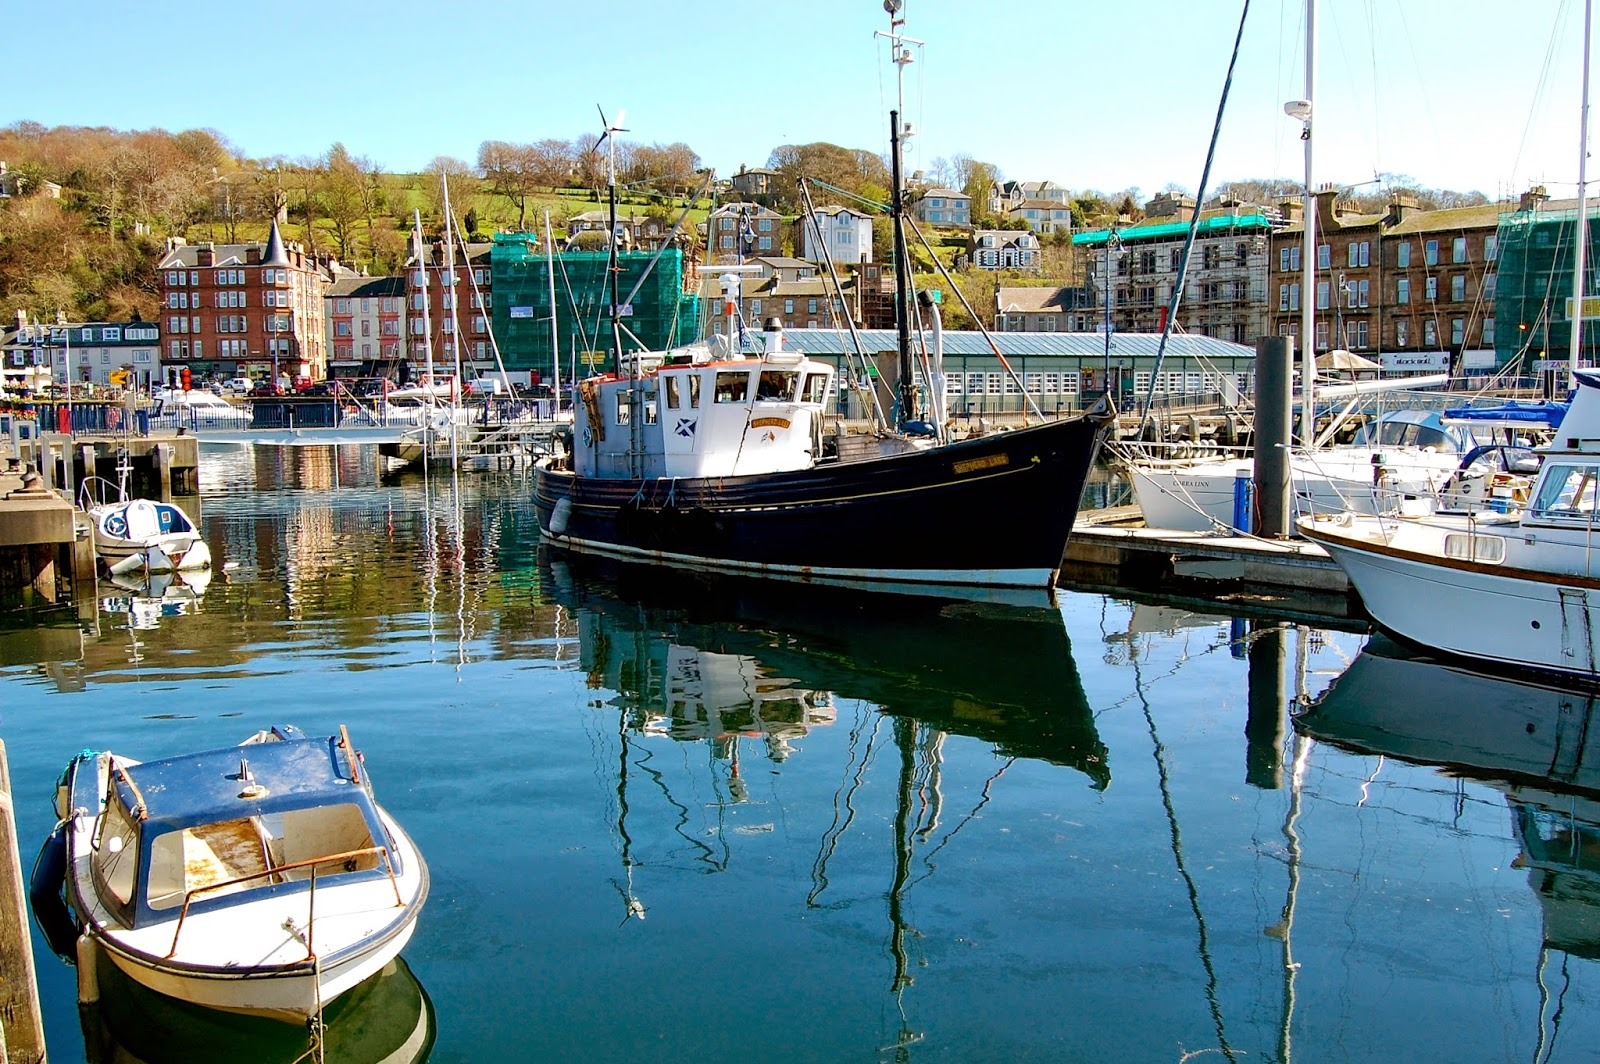 Boats in Rothesay's harbor